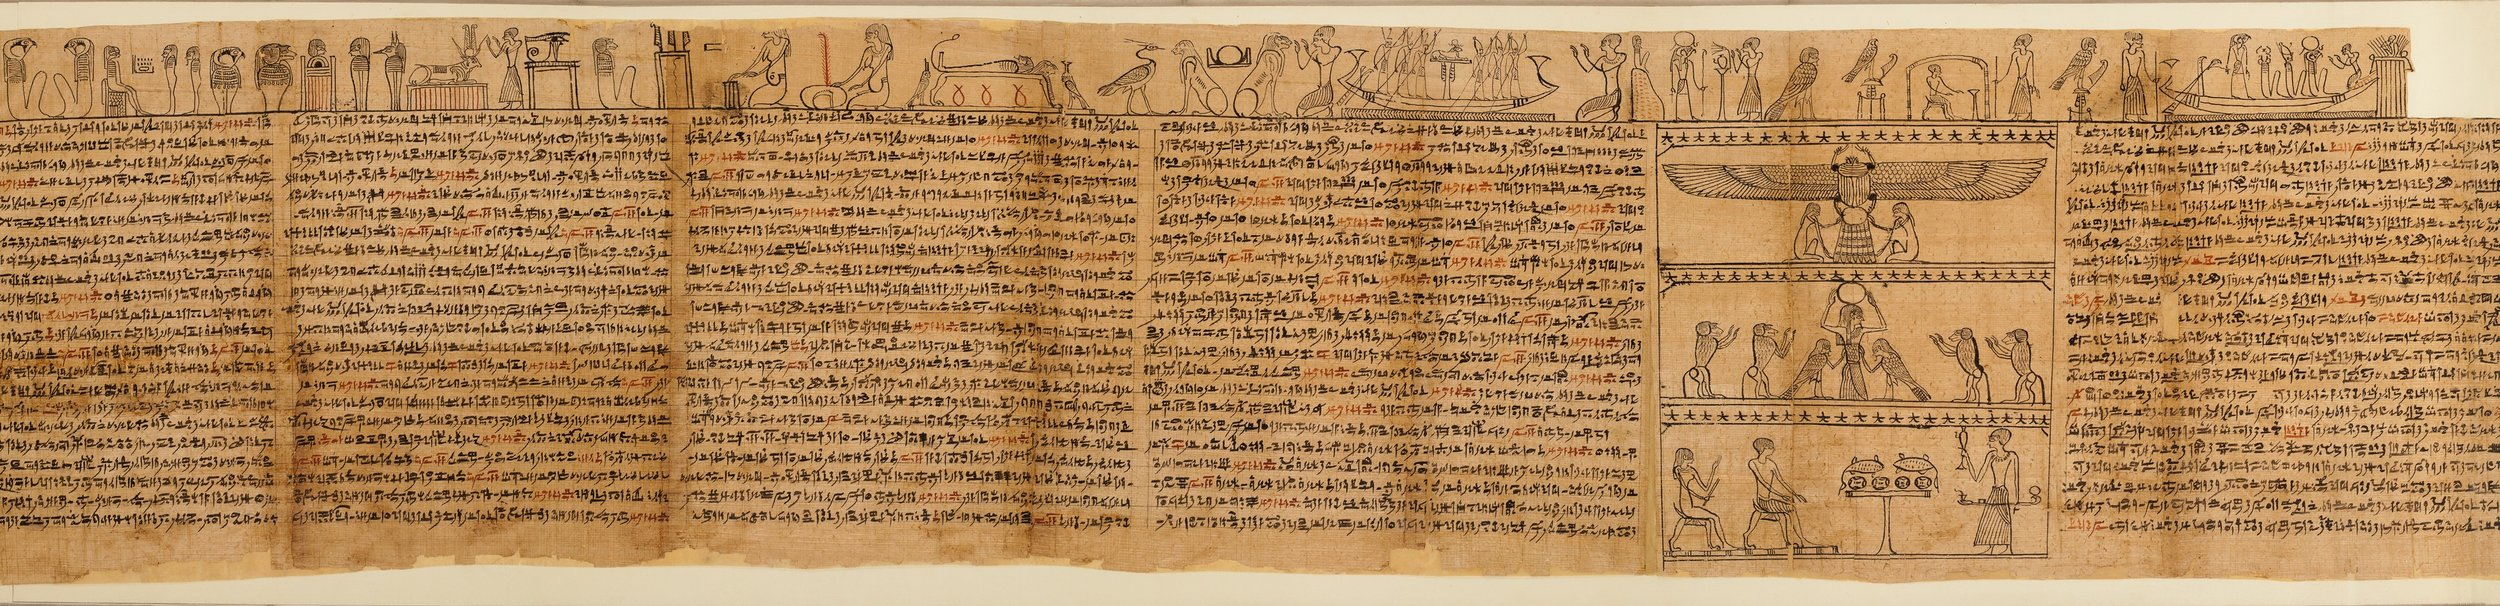 The Egyptians basically invented paper, like this ancient papyrus scroll, but not that many people could write in their beautiful hieroglyphics. From the Book of the Dead of the Priest of Horus, Imhotep (Imuthes), ca. 332–200 BCE.  Courtesy of the Metropolitan Museum of Art.